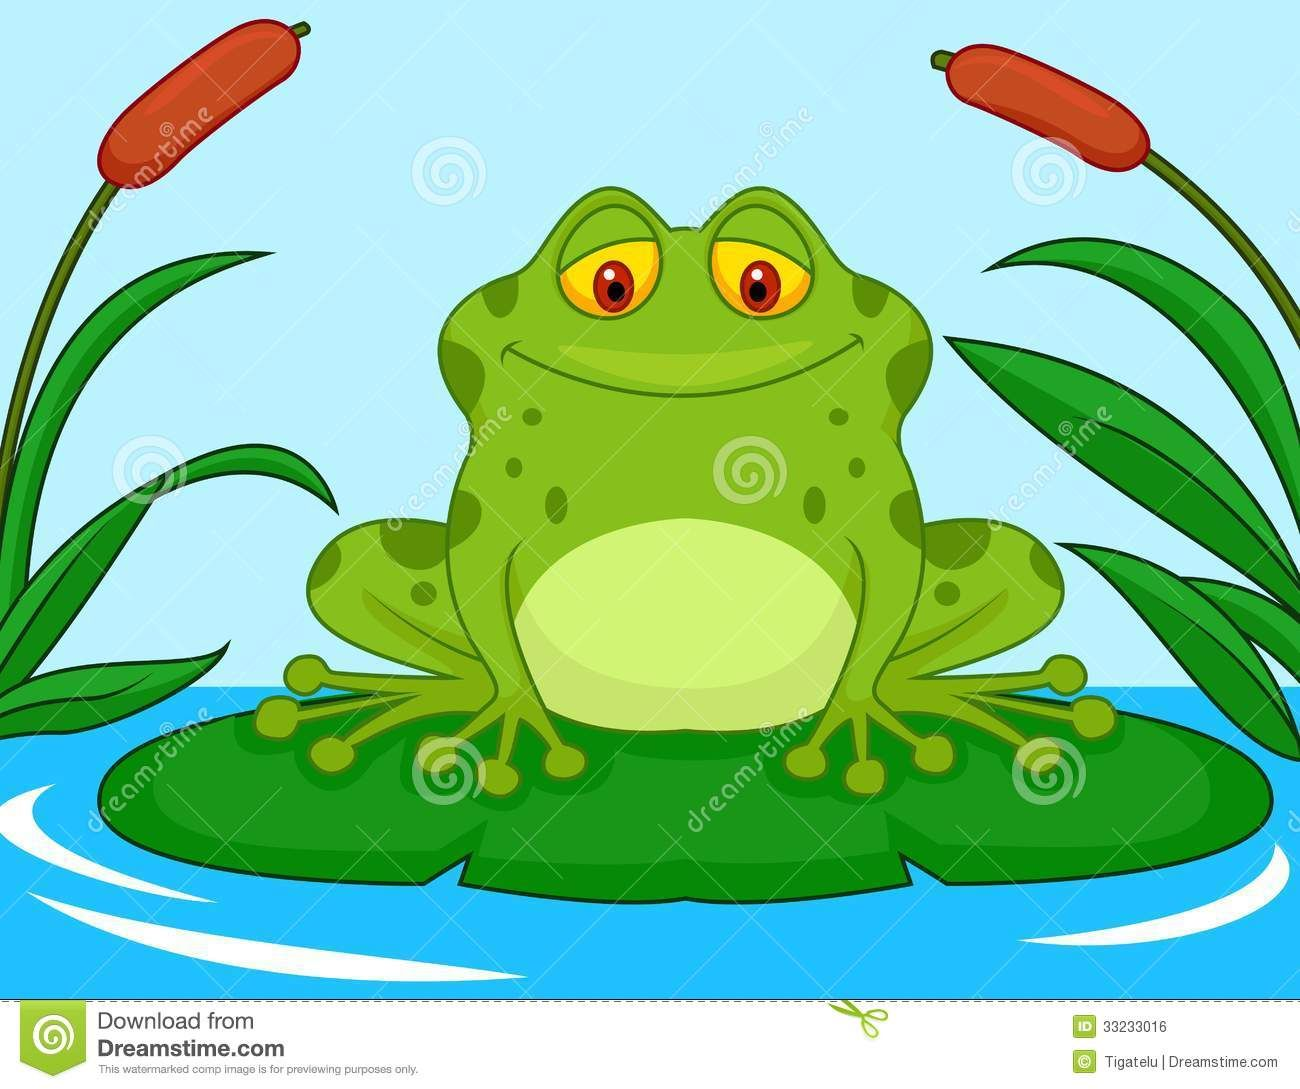 Cute Green Frog Cartoon On A Lily Pad Illustration 33233016